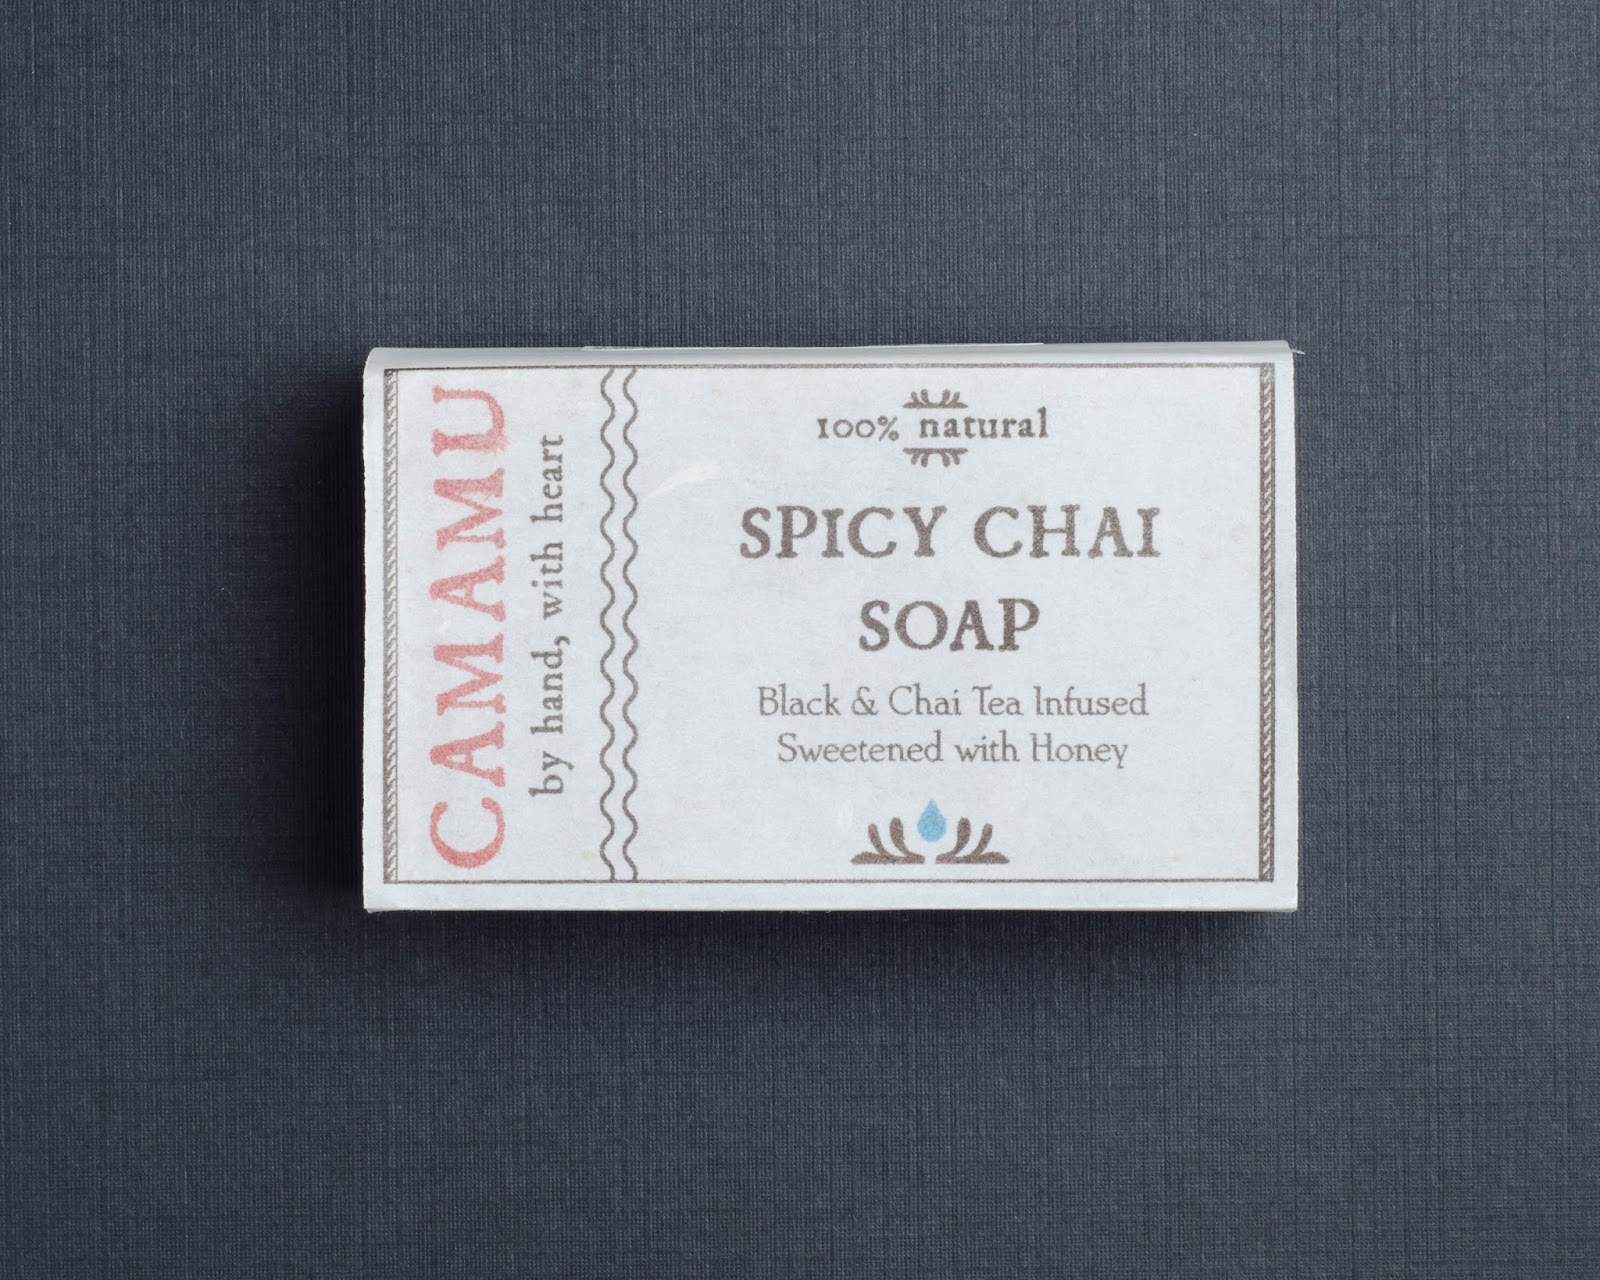 Camamu Spicy Chai Soap in it's packaging arranged as a flatlay on a black background